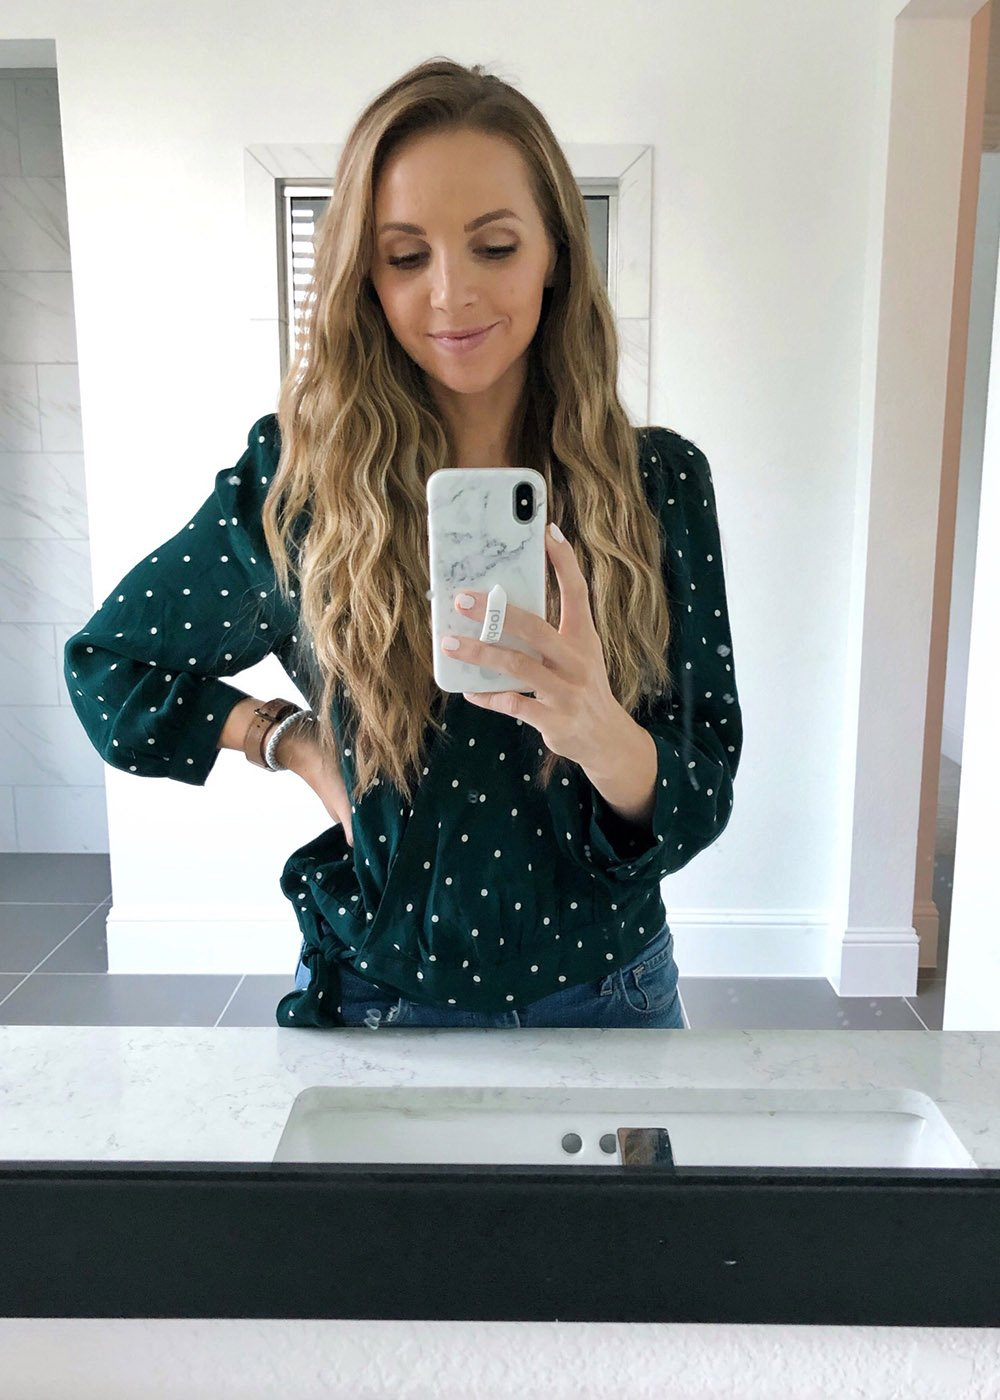 polk dot wrap top - instagram outfit